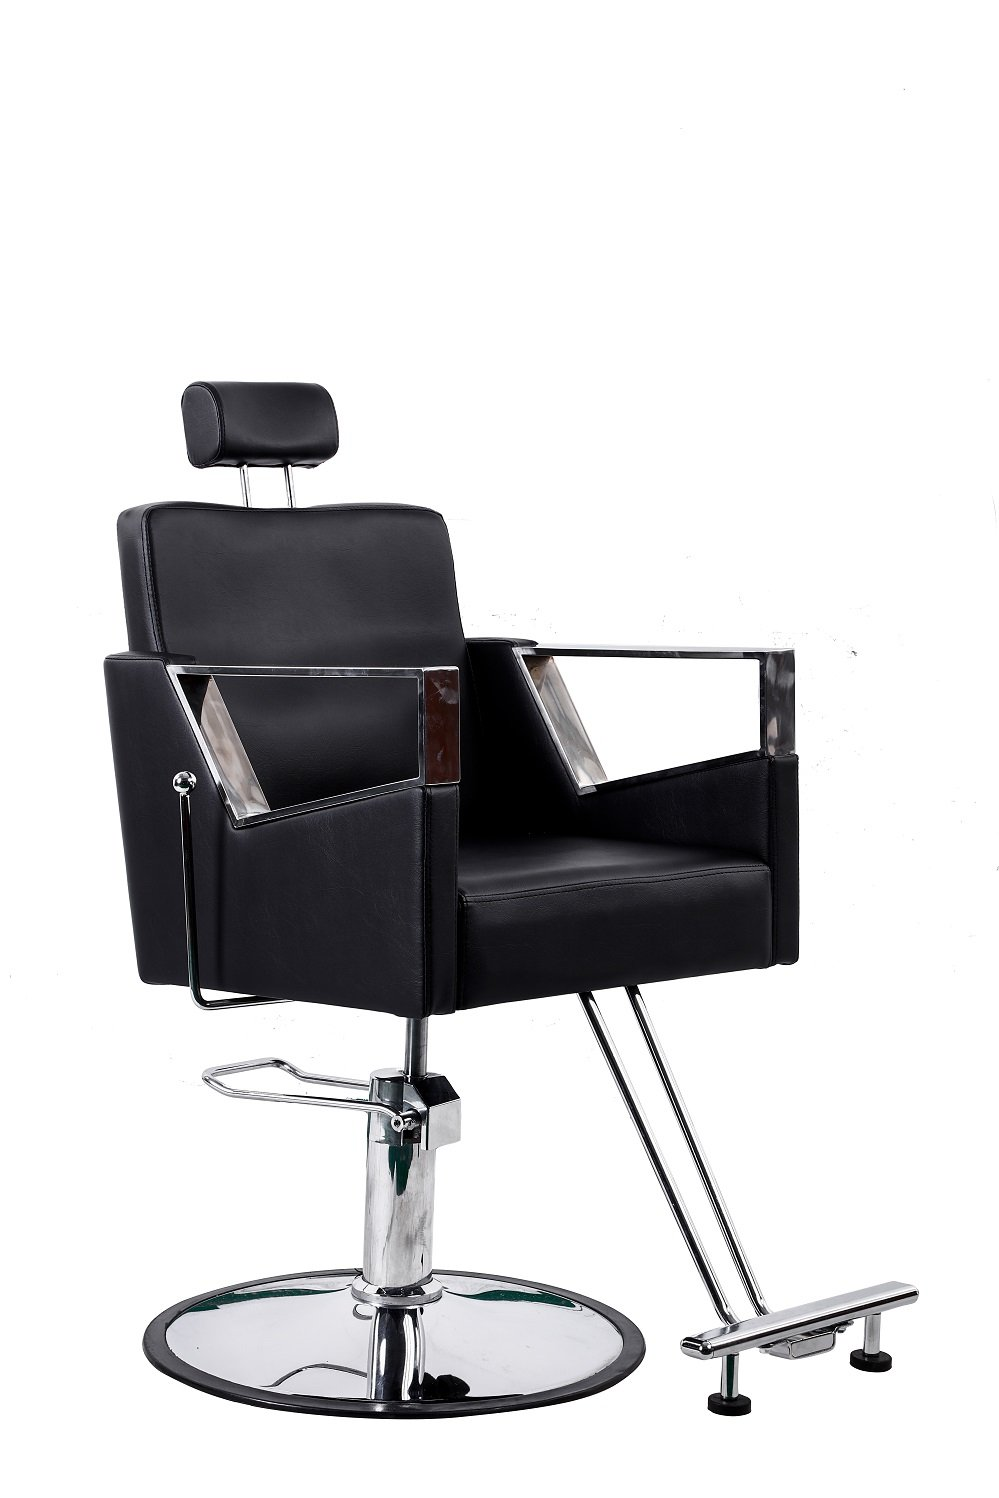 Miraculous Danyel Beauty Profession Black Recline Hydraulic Barber Styling Chair Round Base Gmtry Best Dining Table And Chair Ideas Images Gmtryco